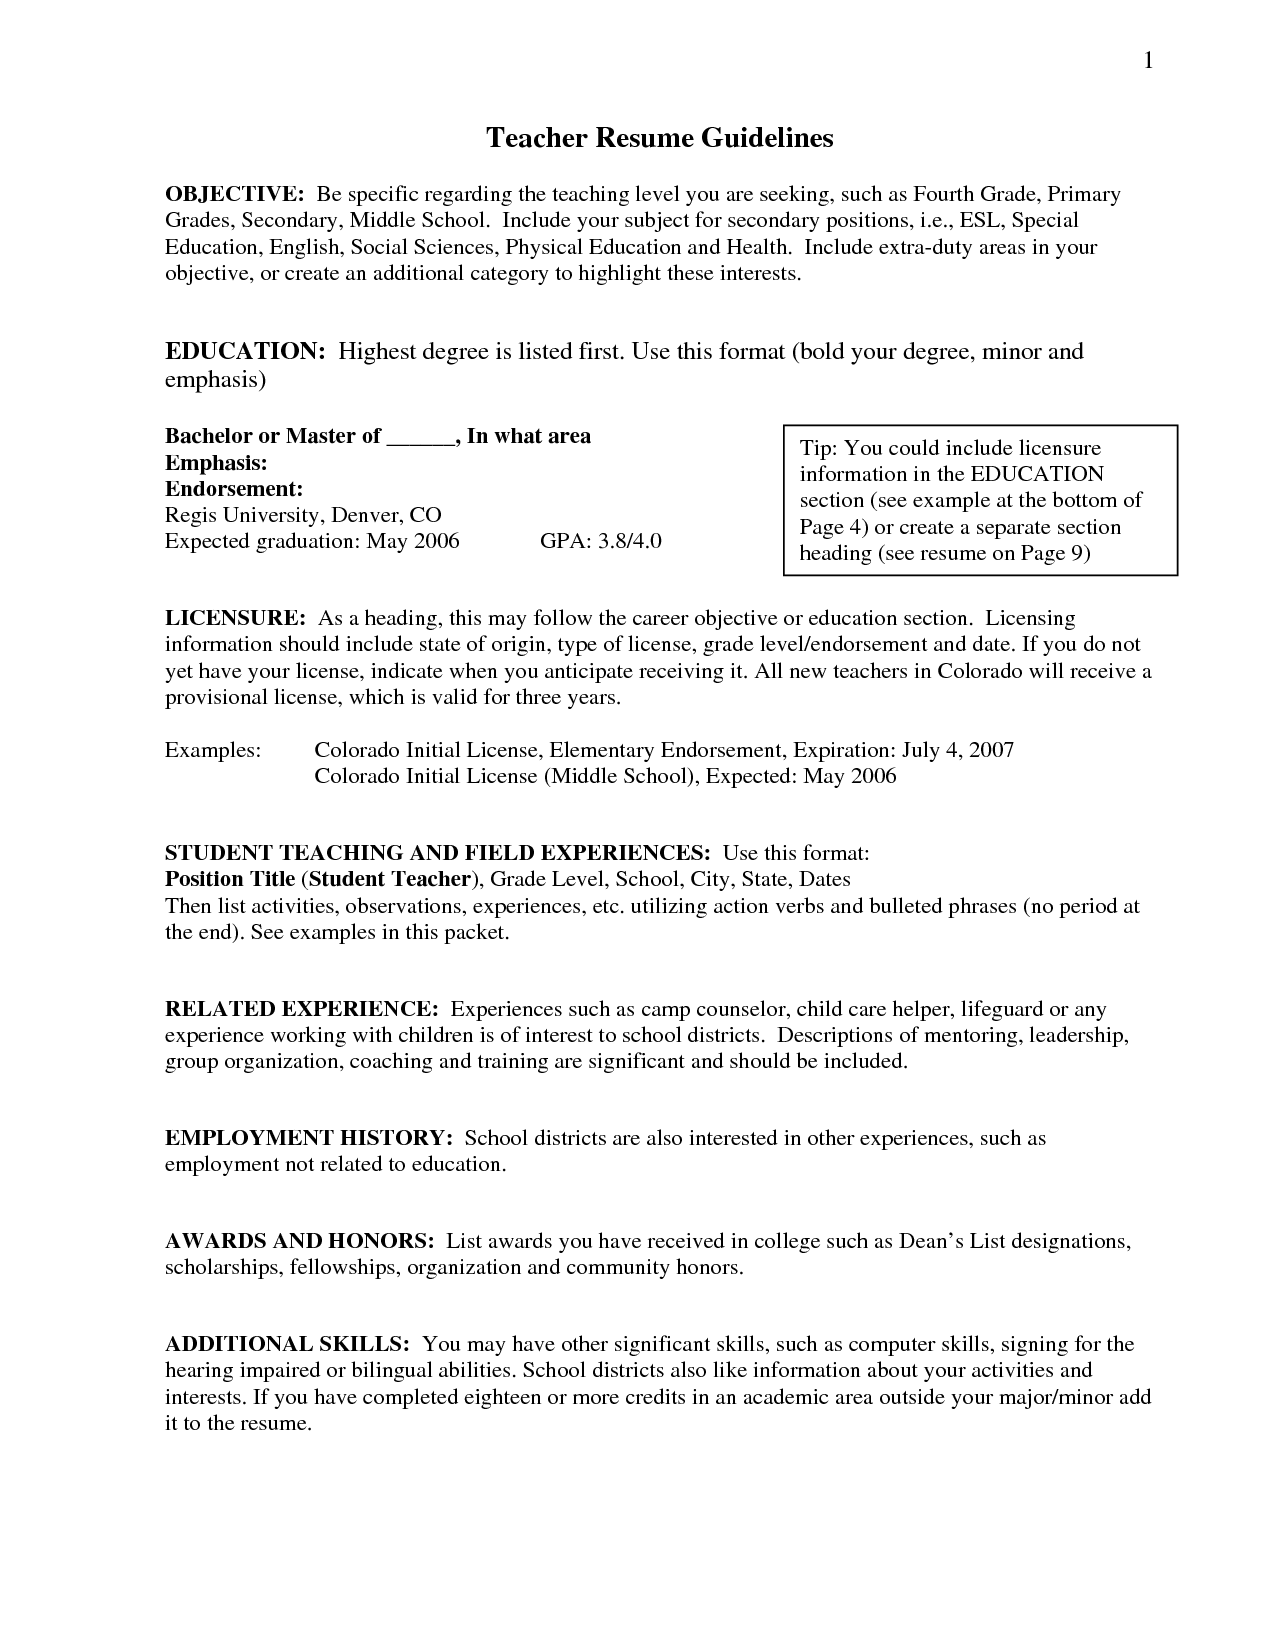 Resume Objective Statement For Teacher   Http://www.resumecareer.info/resume  Objective Statement For Teacher 14/